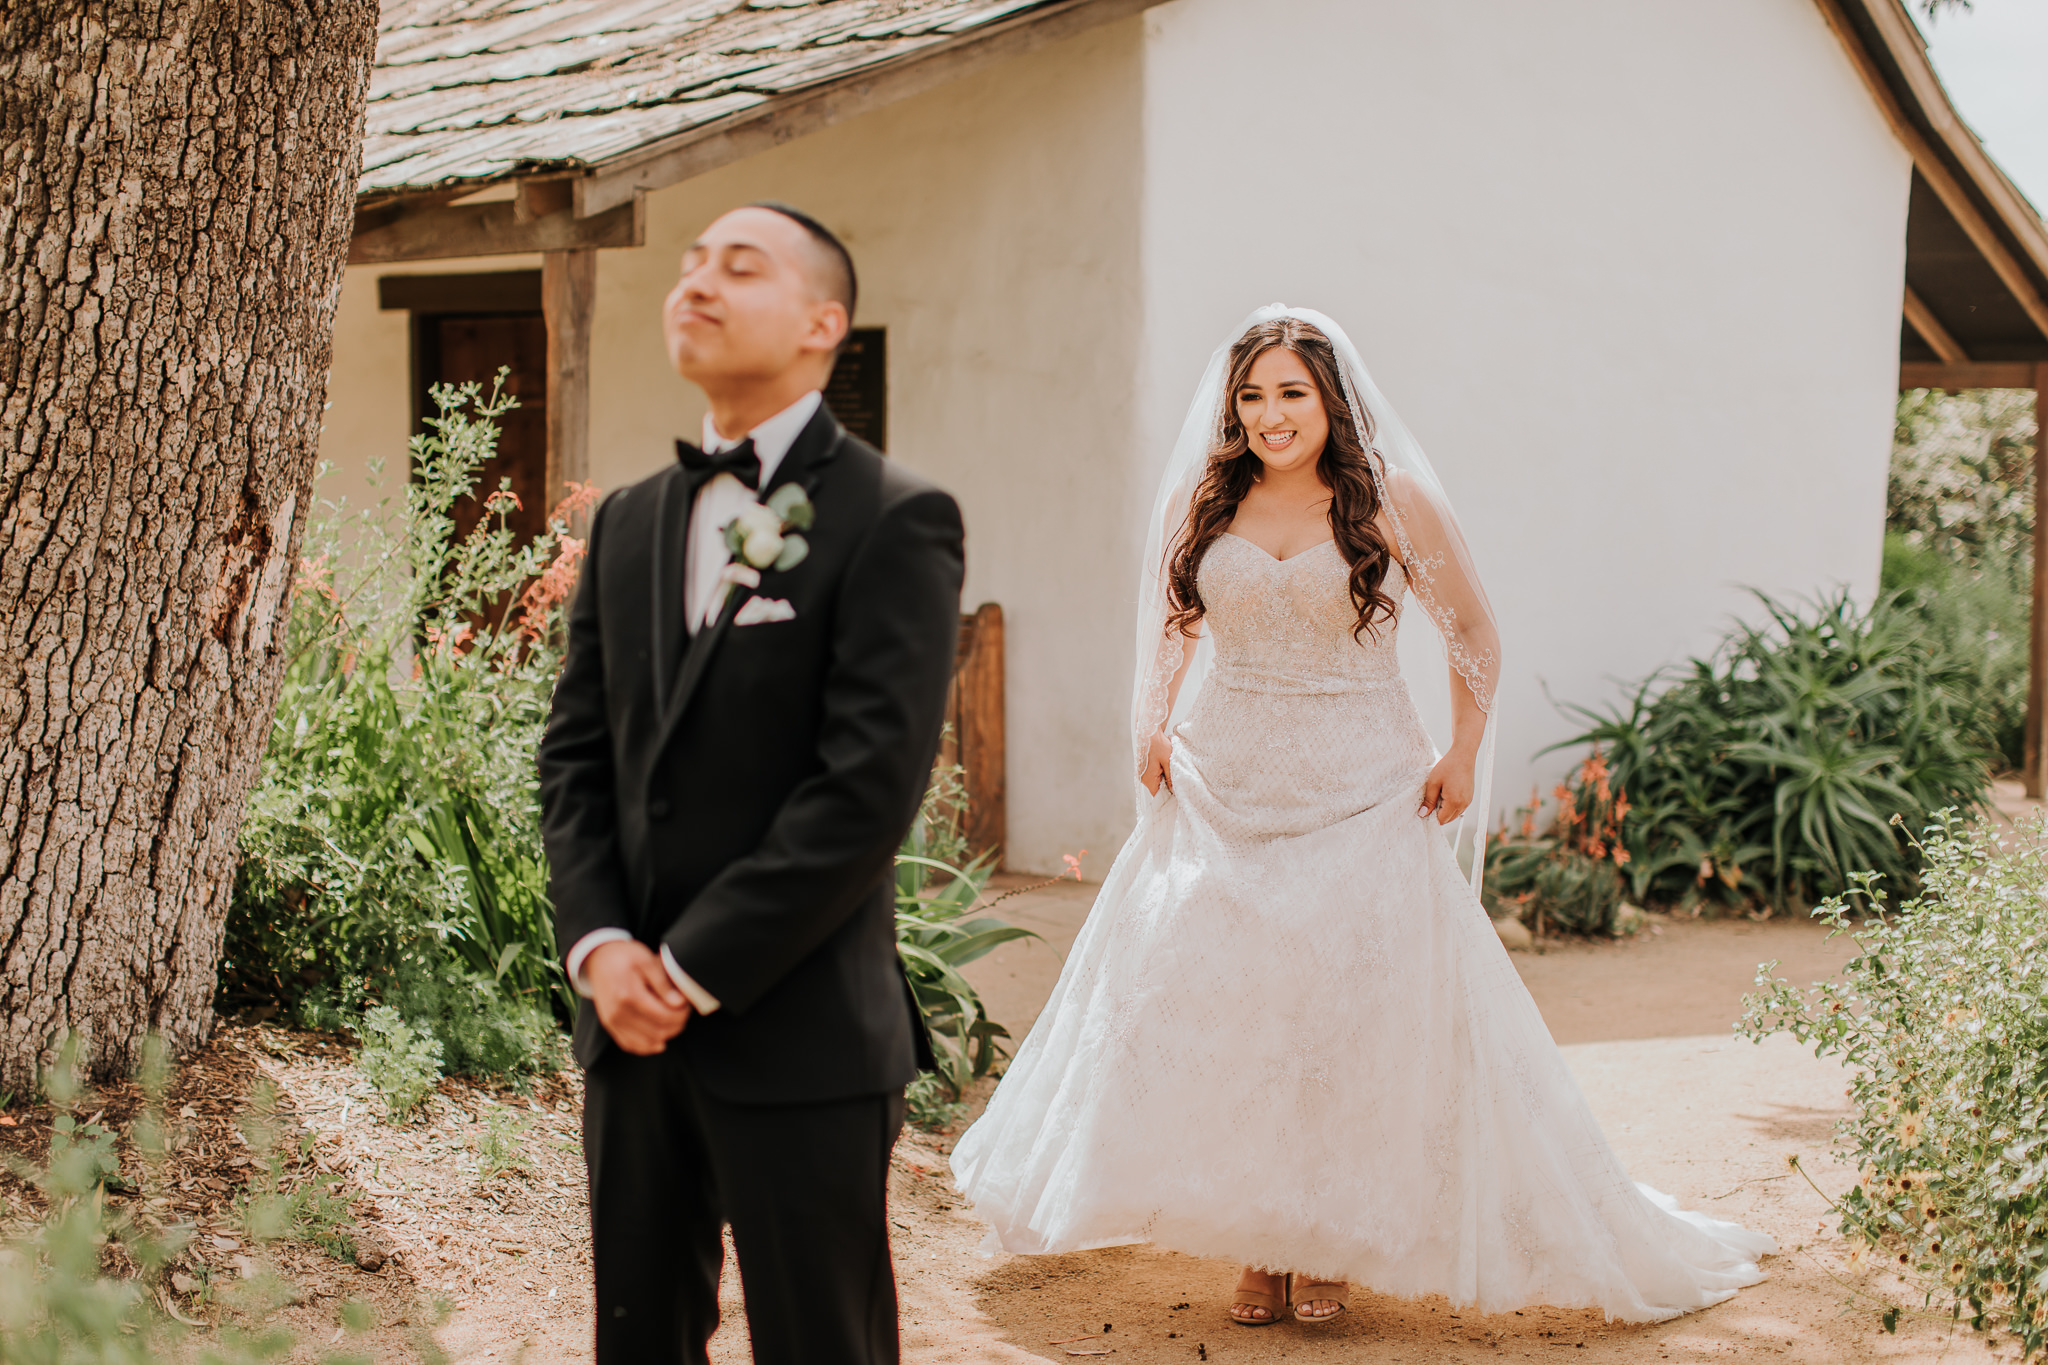 2019-04-05_Brittany_and_Nick_-_Married_-_San_Juan_Capistrano-30.jpg